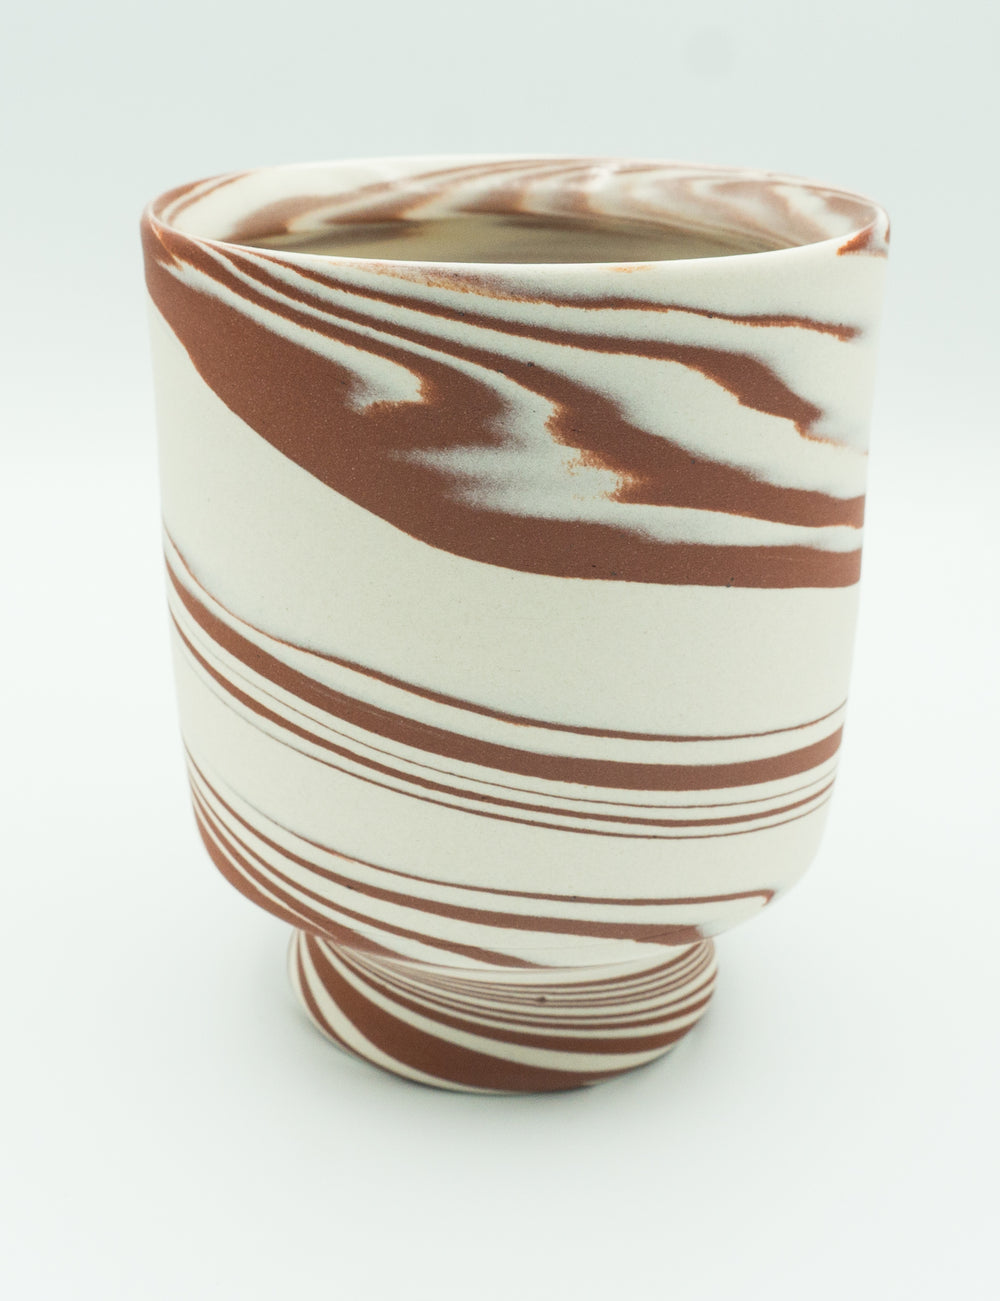 Agateware Tea Bowl in Red Iron Oxide Brown & White